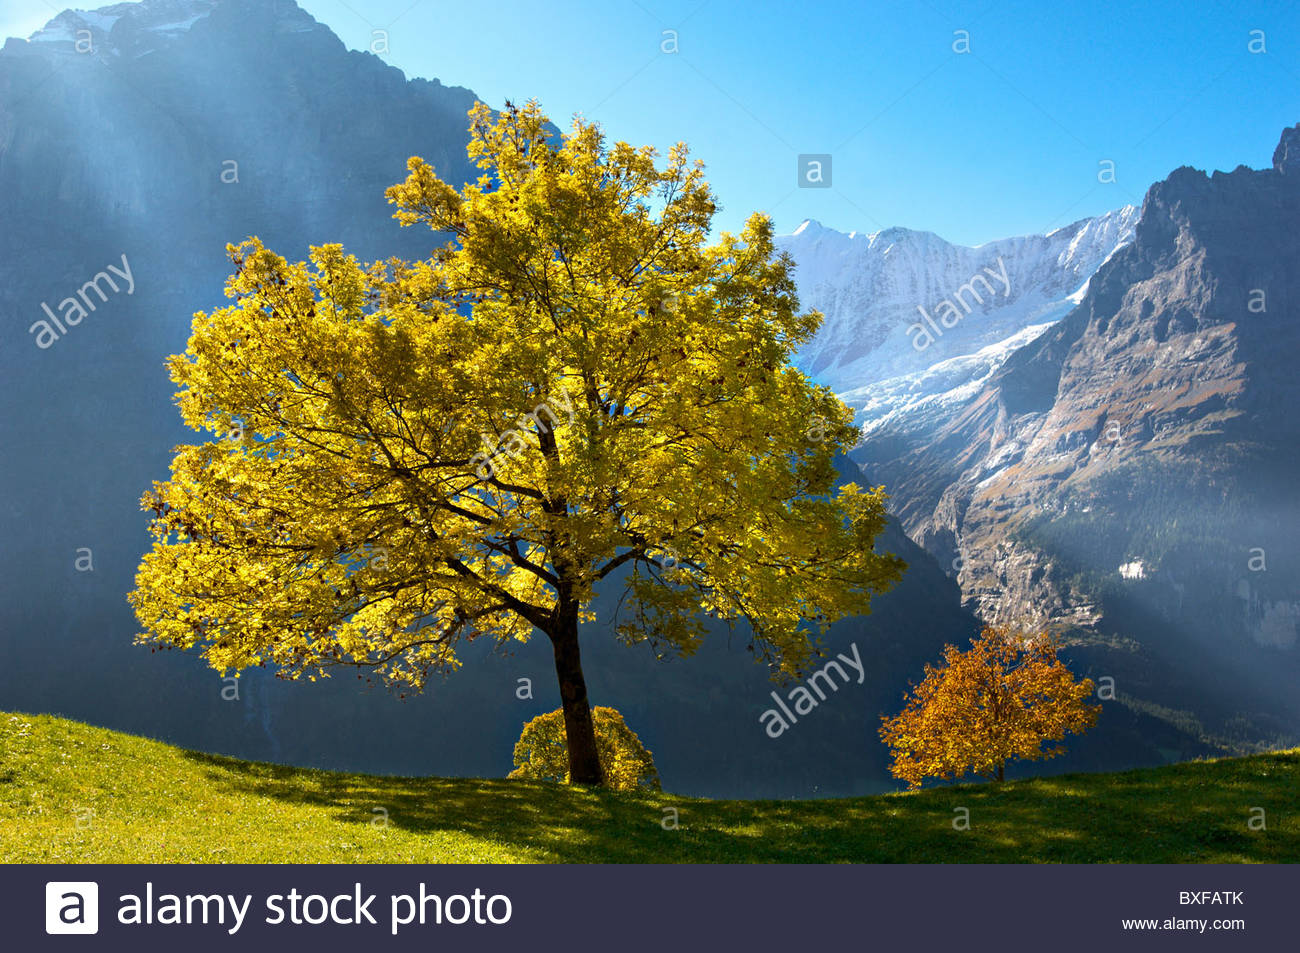 Autumn trees in the Swiss Alps, Grindelwald, Switzerland - Stock Image